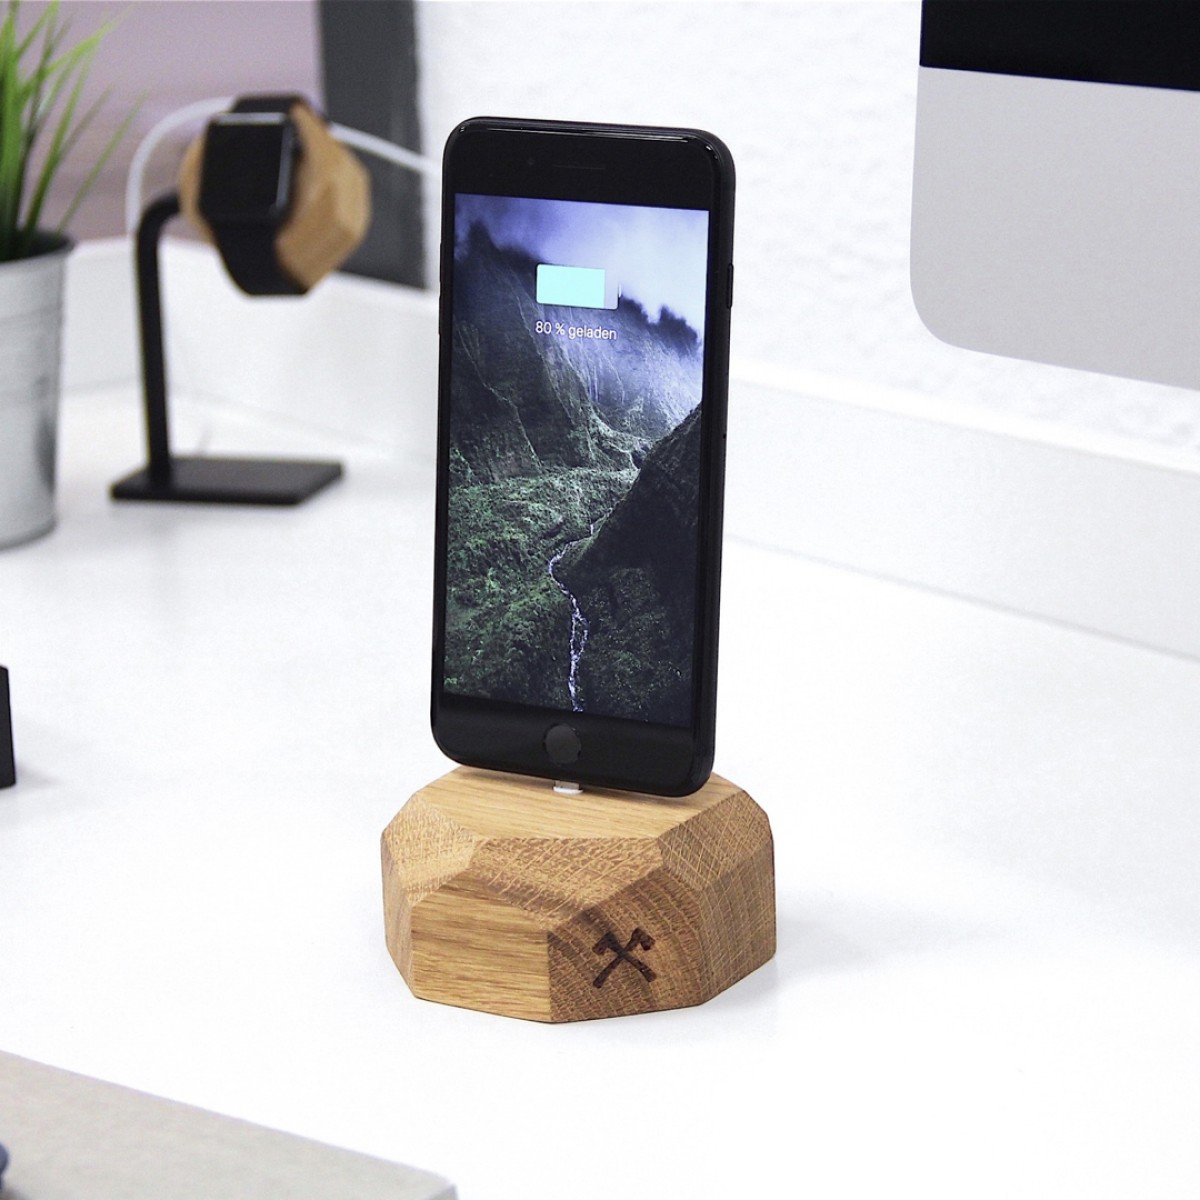 Woodcessories - EcoDock iPhone - Premium Design Ladestation, Dock für alle Apple Lightning iPhones aus massivem, FSC-zertifiziertem Holz (Eiche)